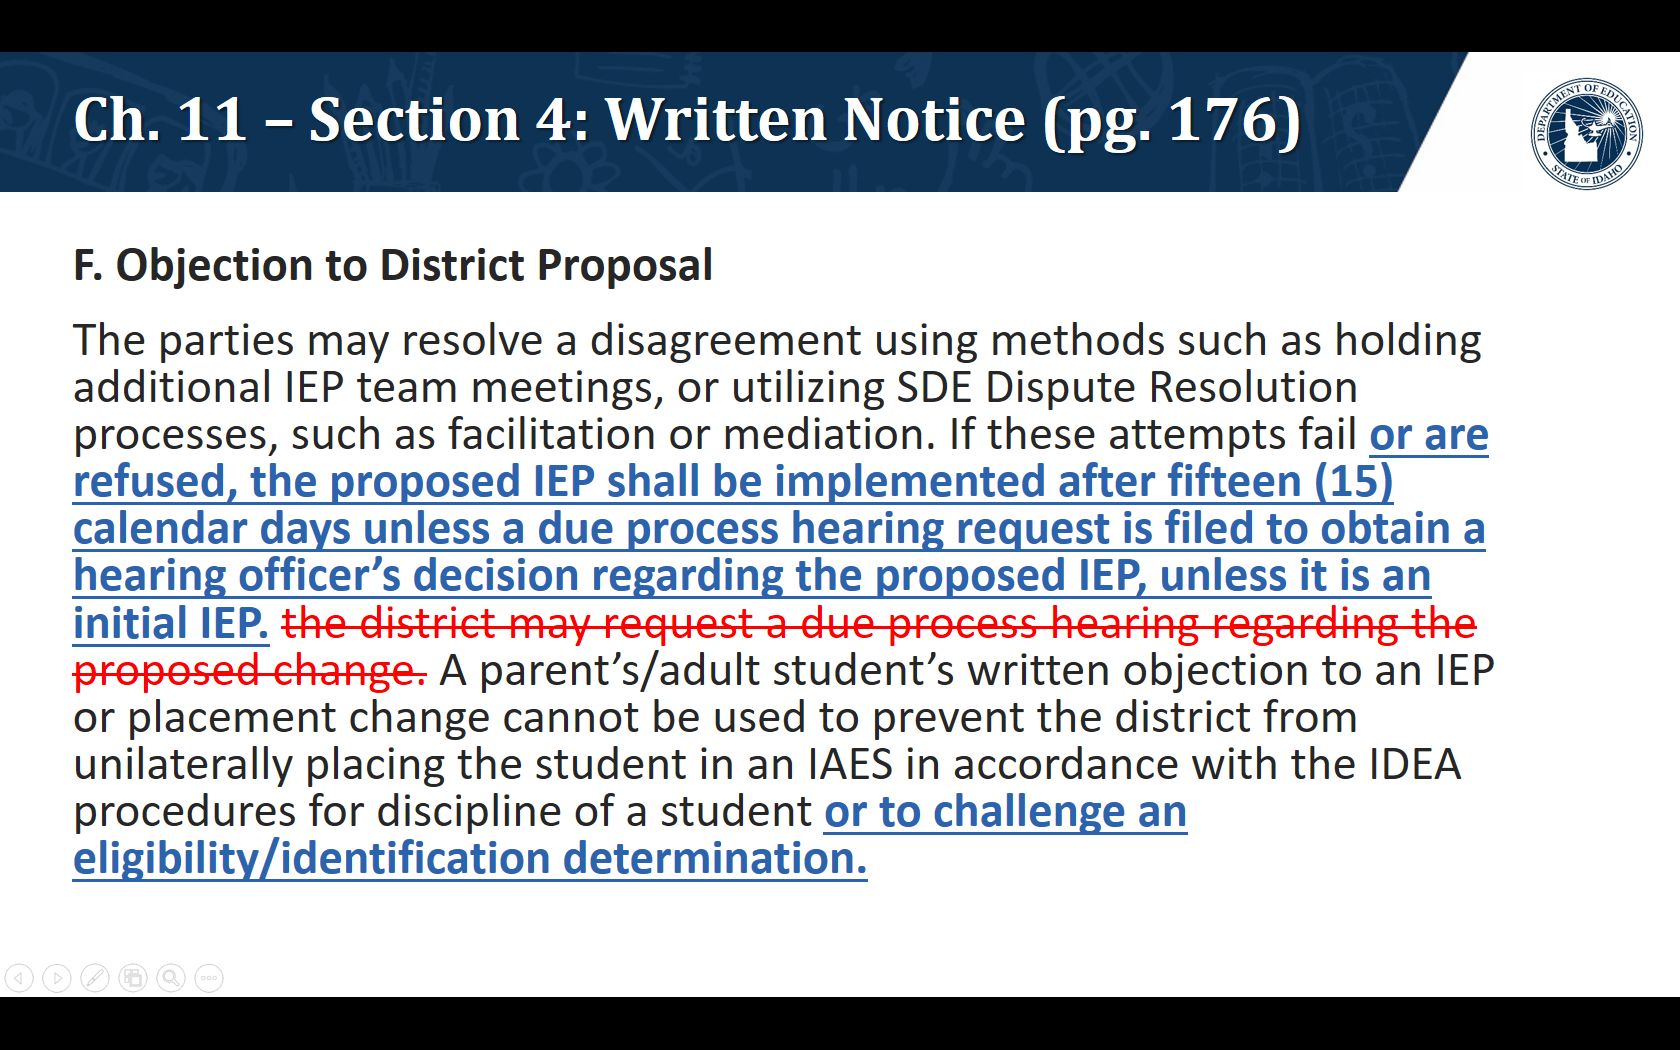 R. Objection to District Proposal. The parties may resolve a disagreement using methods such as holding additional IEP team meetings, or utilizing SDE Dispute Resolution processes, such as facilitation or mediation. If these attempts fail or are refused, the proposed IEP shall be implemented after fifteen (15) calendar days unless a due process hearing request is filed to obtain a hearing officer's decision regarding the proposed IEP, unless it is an initial IEP. A parent's/adult student's written objection to an IEP or placement change cannot be used to prevent the district from unilaterally placing the student in an IAES in accordance with the IDEA procedures for discipline of a student or to challenge an eligibility/identification determination.